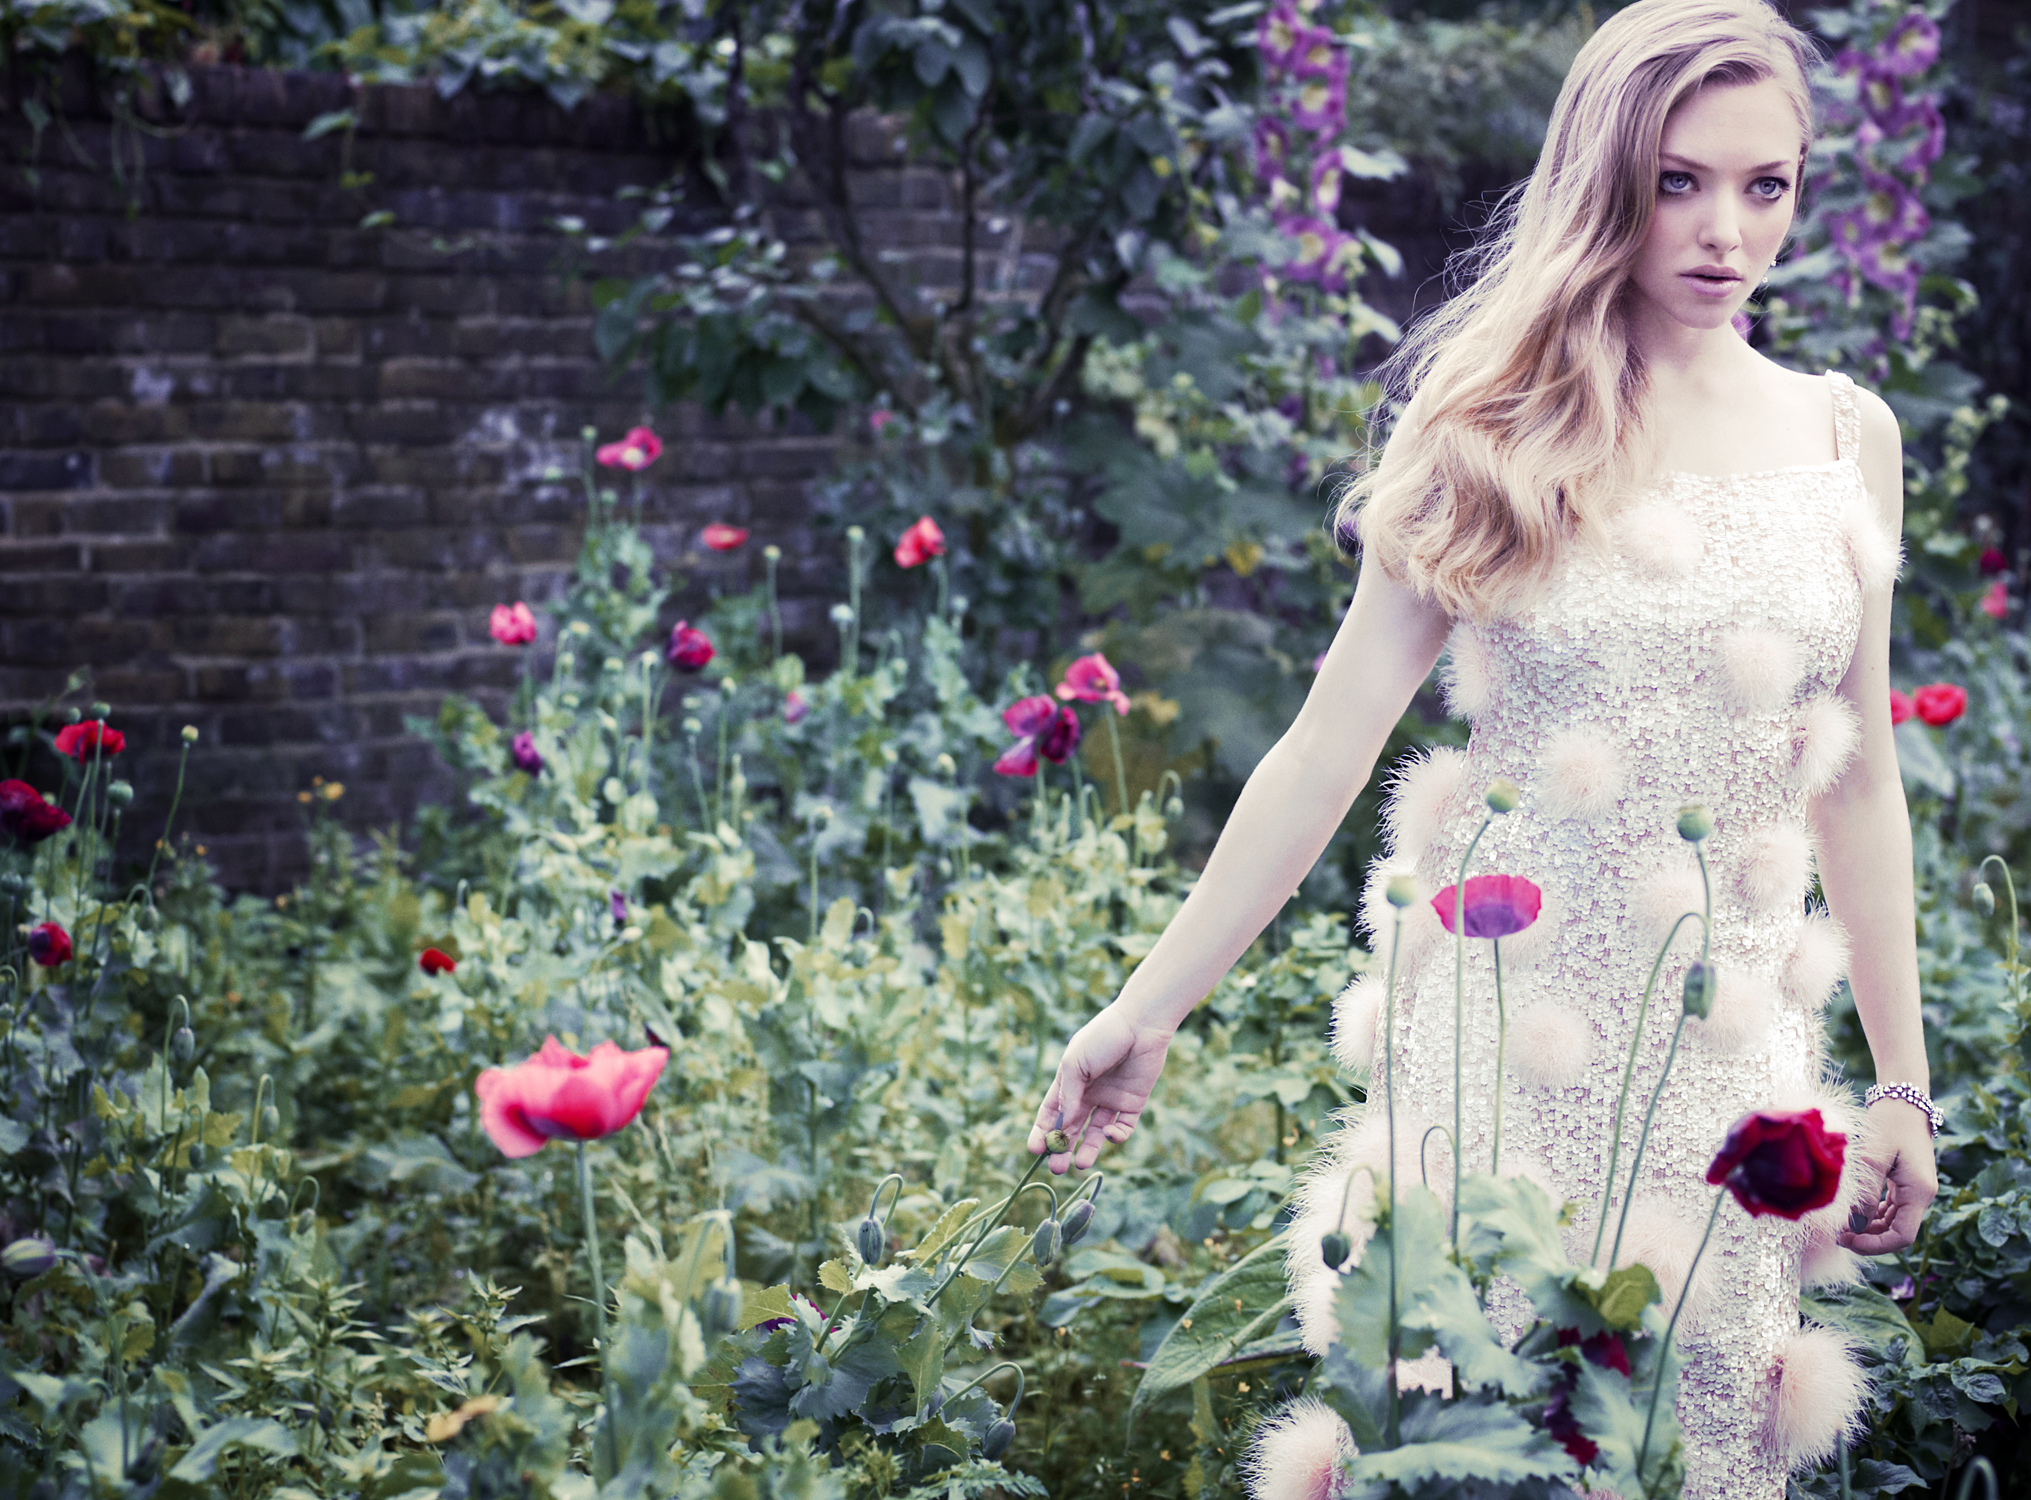 amanda seyfried images vanity fair uk 2012 hd wallpaper